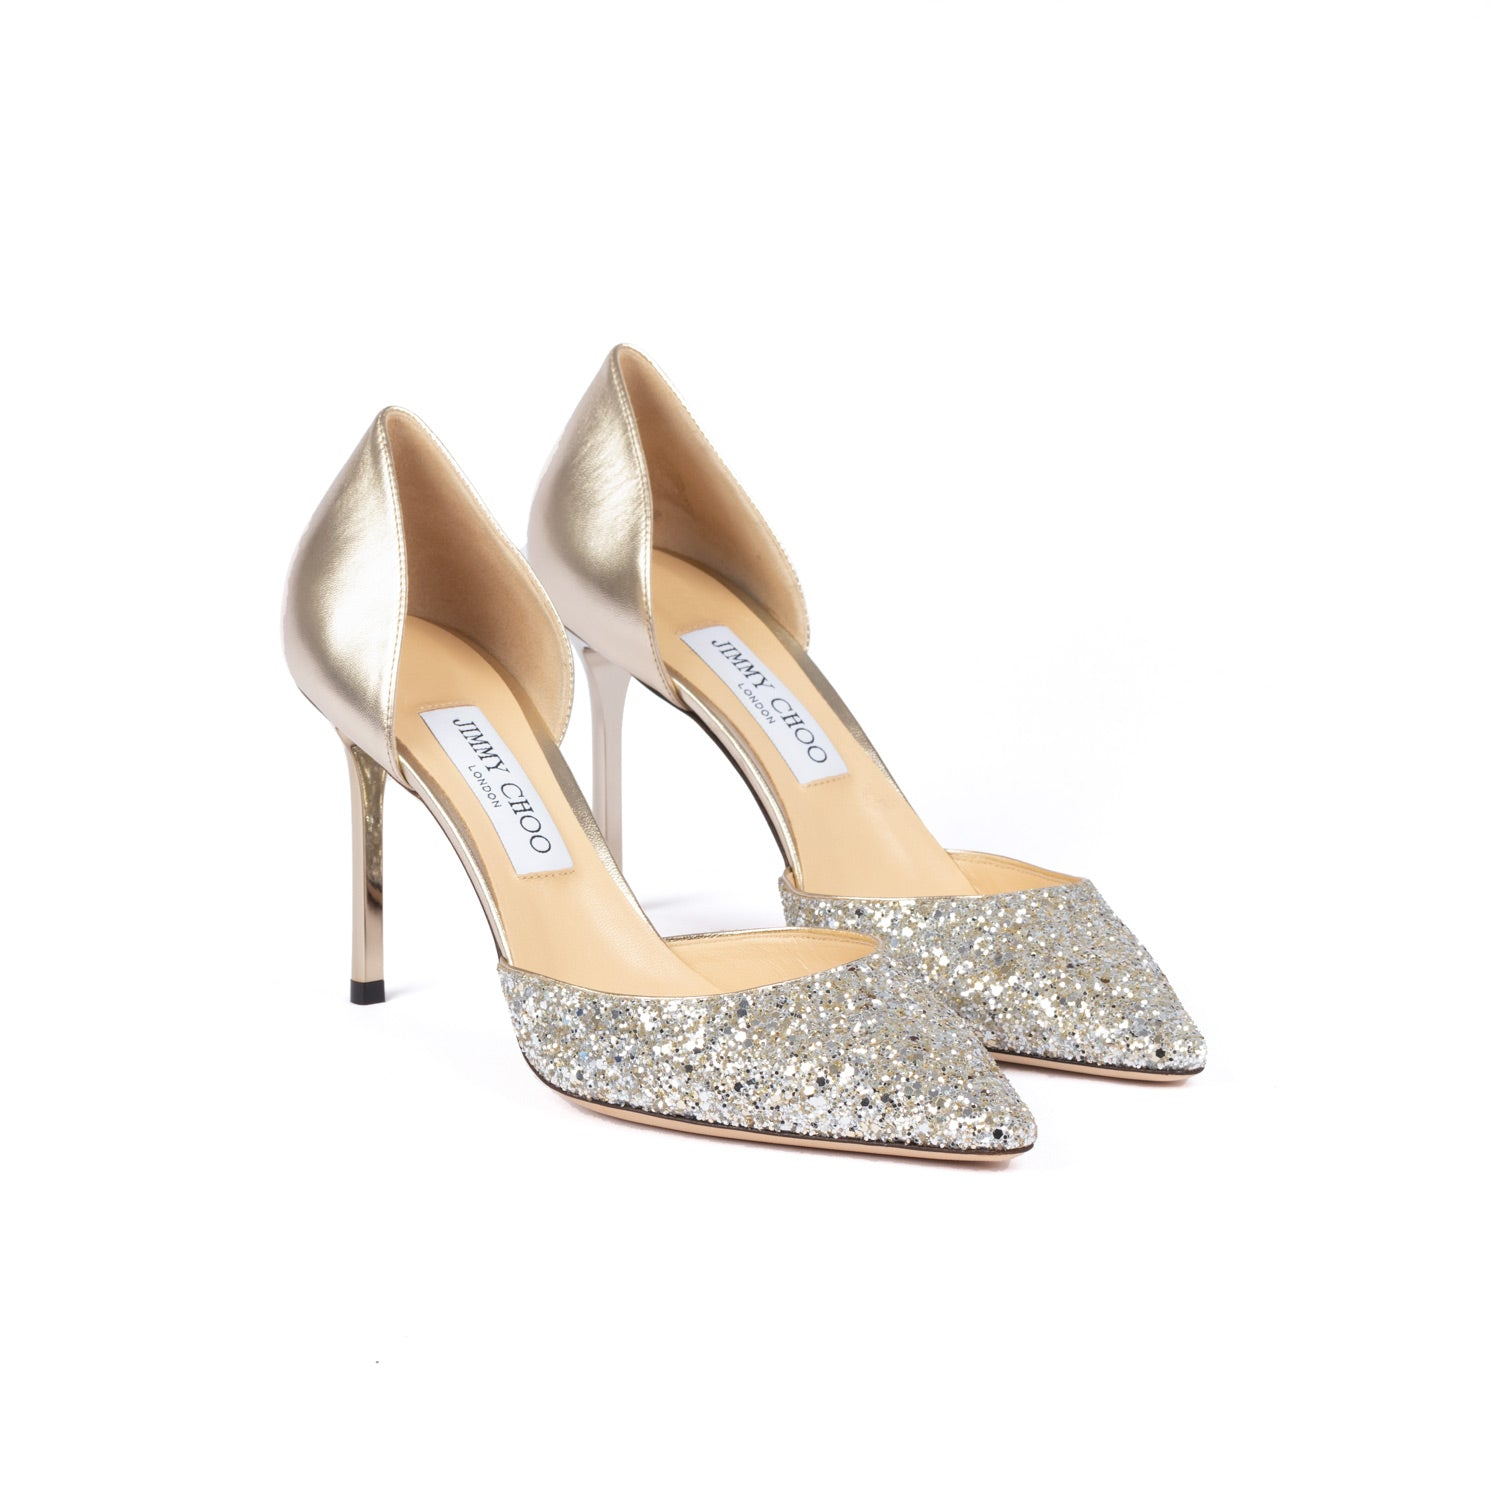 Esther 85 Coarse Glitter Fabric/Metallic Nappa | Shop JIMMY CHOO Online India